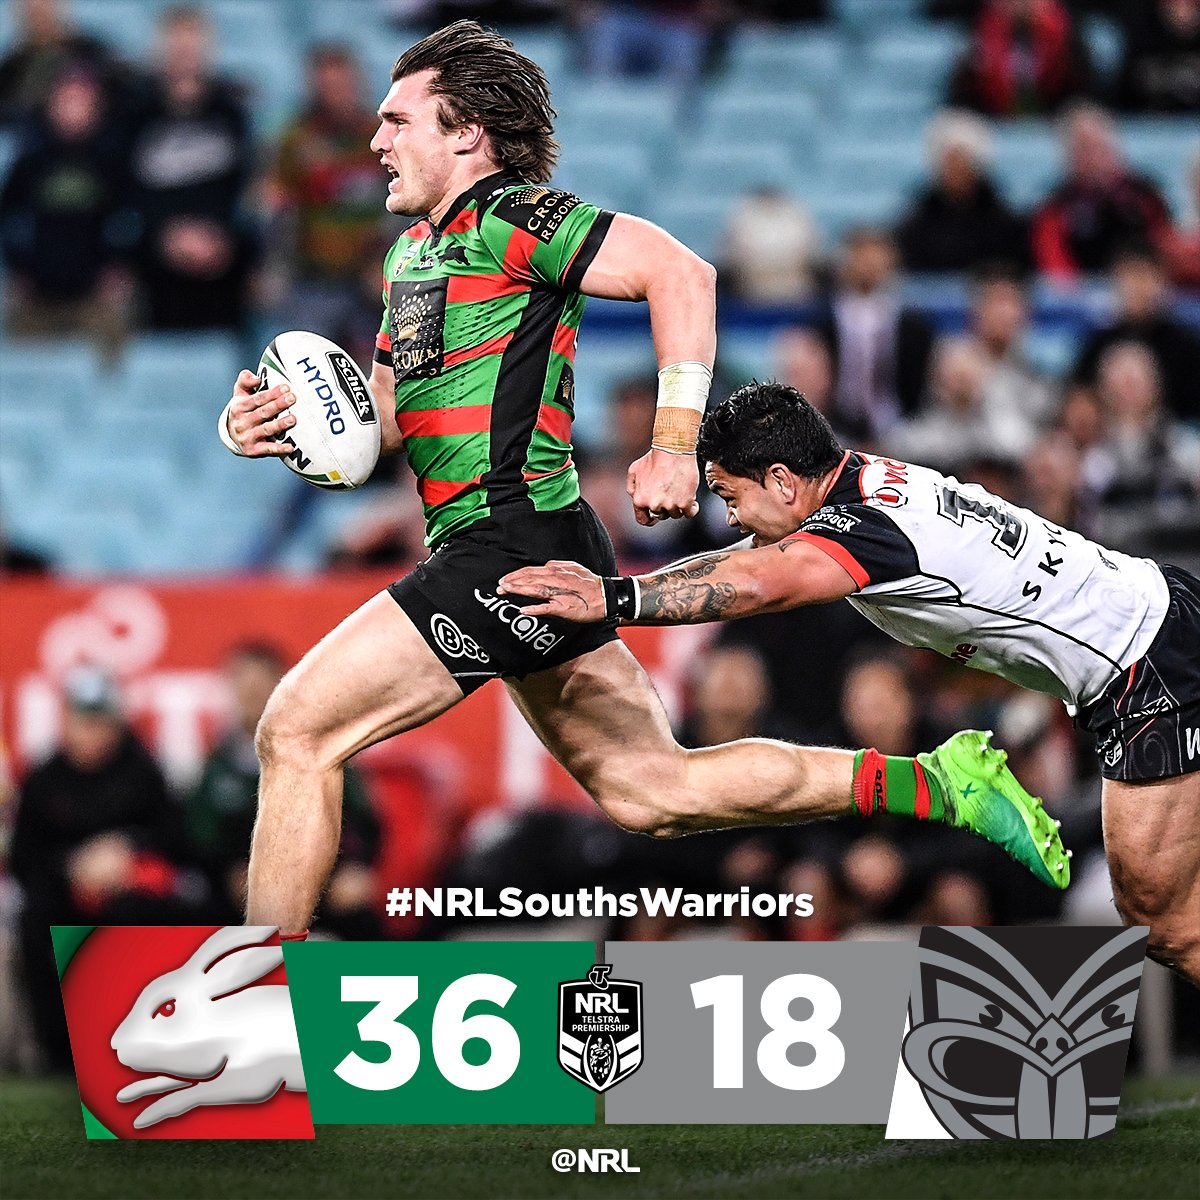 South Sydney surge in the second half to defeat Warriors!  #NRLSouthsW...